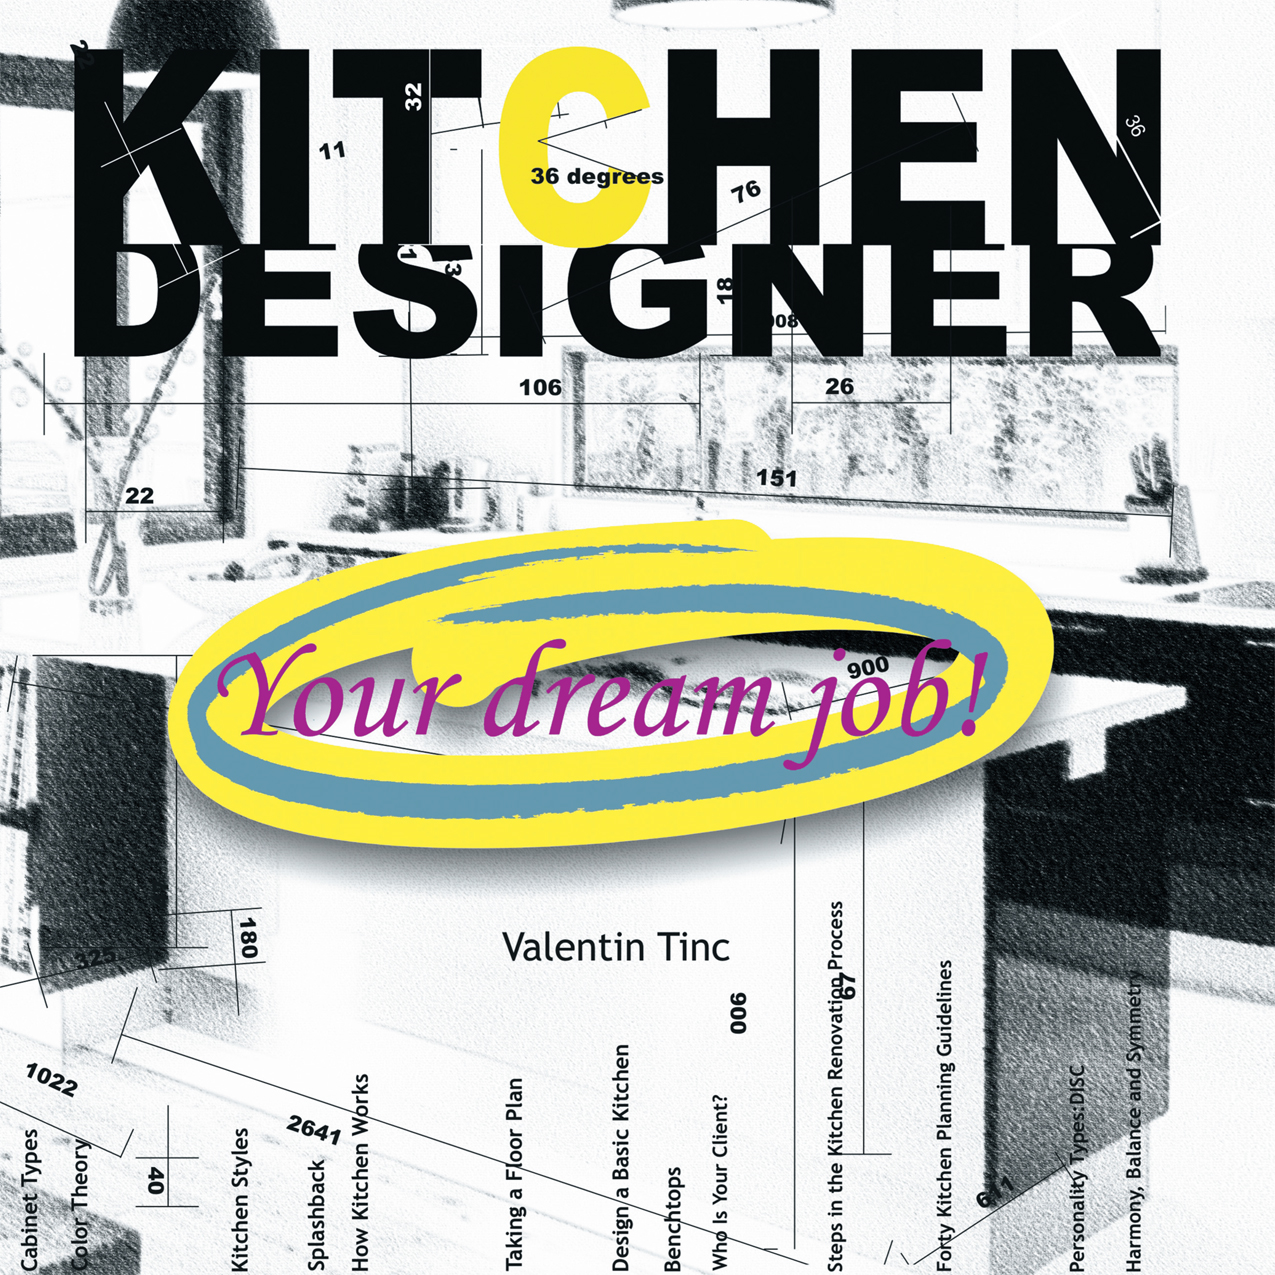 Kitchen Designer: Your Dream Job! By: Valentin Tinc